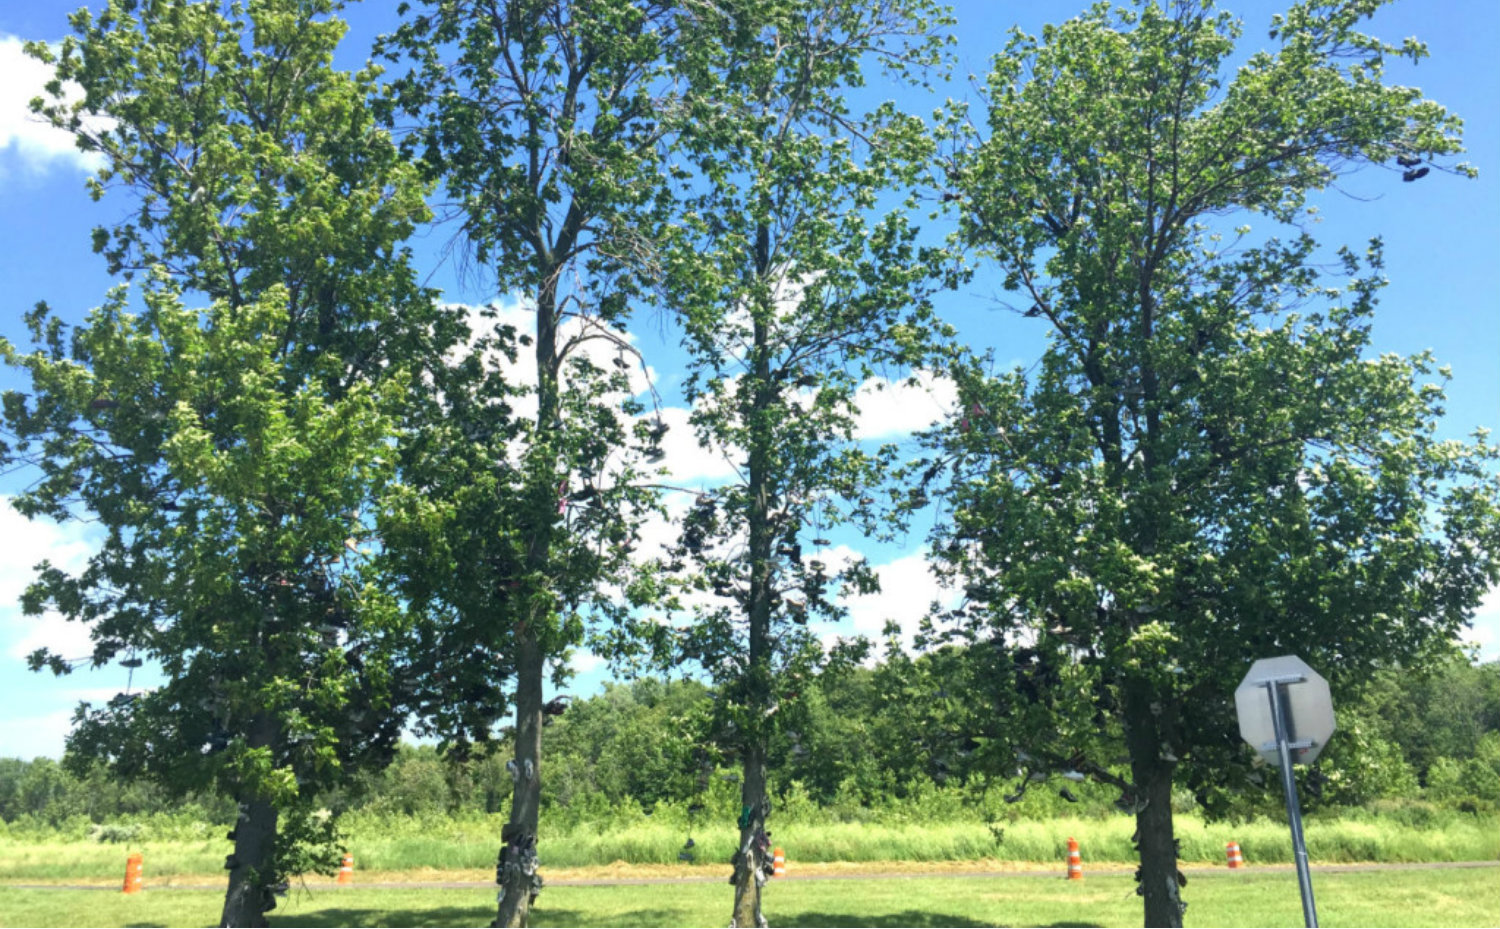 Shoe Trees in Lyndonville, NY - Featured Image